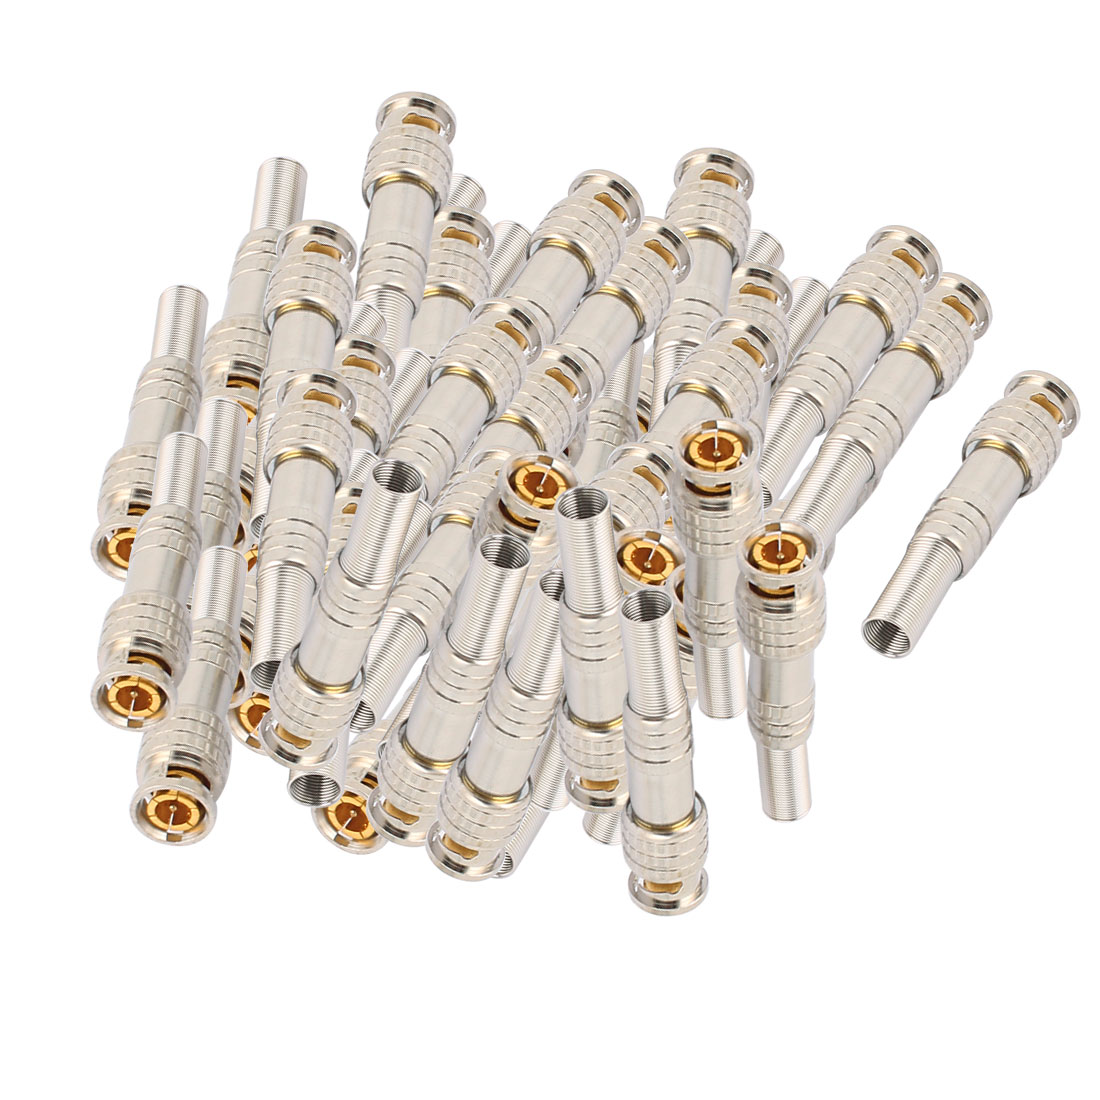 50 Pcs Spring Gold-plated BNC Male Connector for CCTV Camera Coaxial Cable